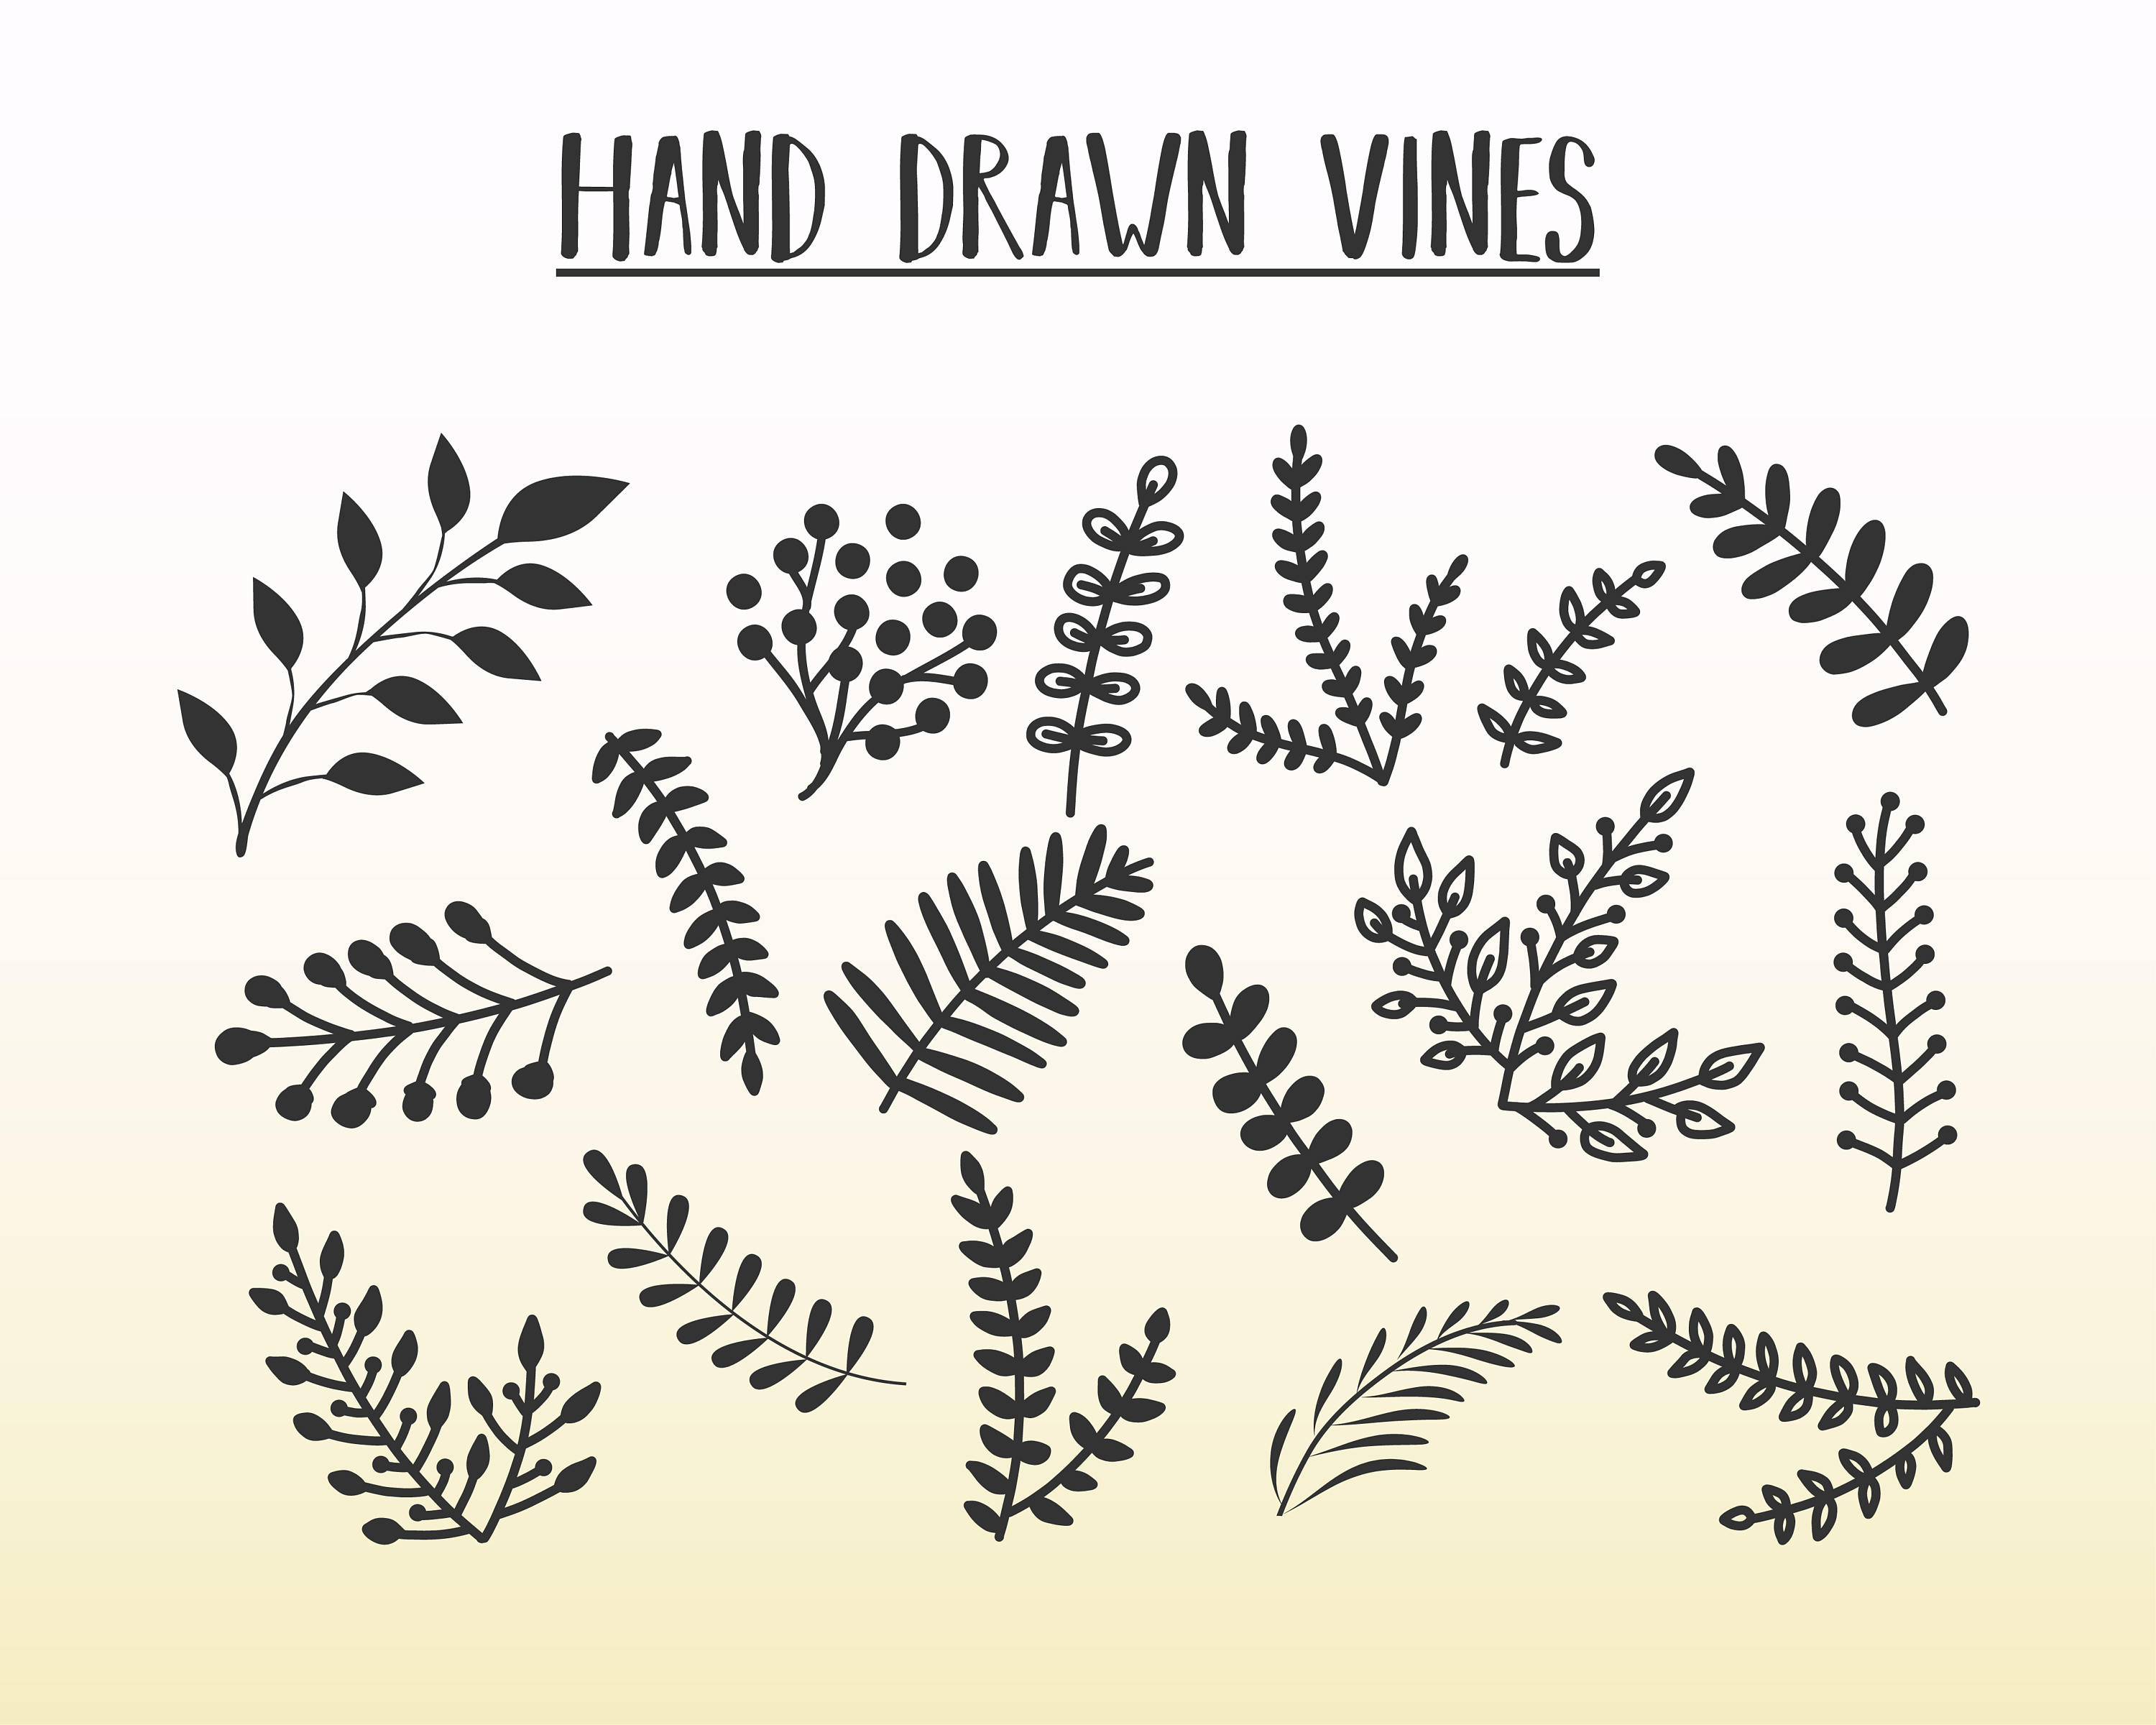 3000x2400 Hand Drawn Vines Vines Svg Dxf Vines Vector Eps Png Etsy